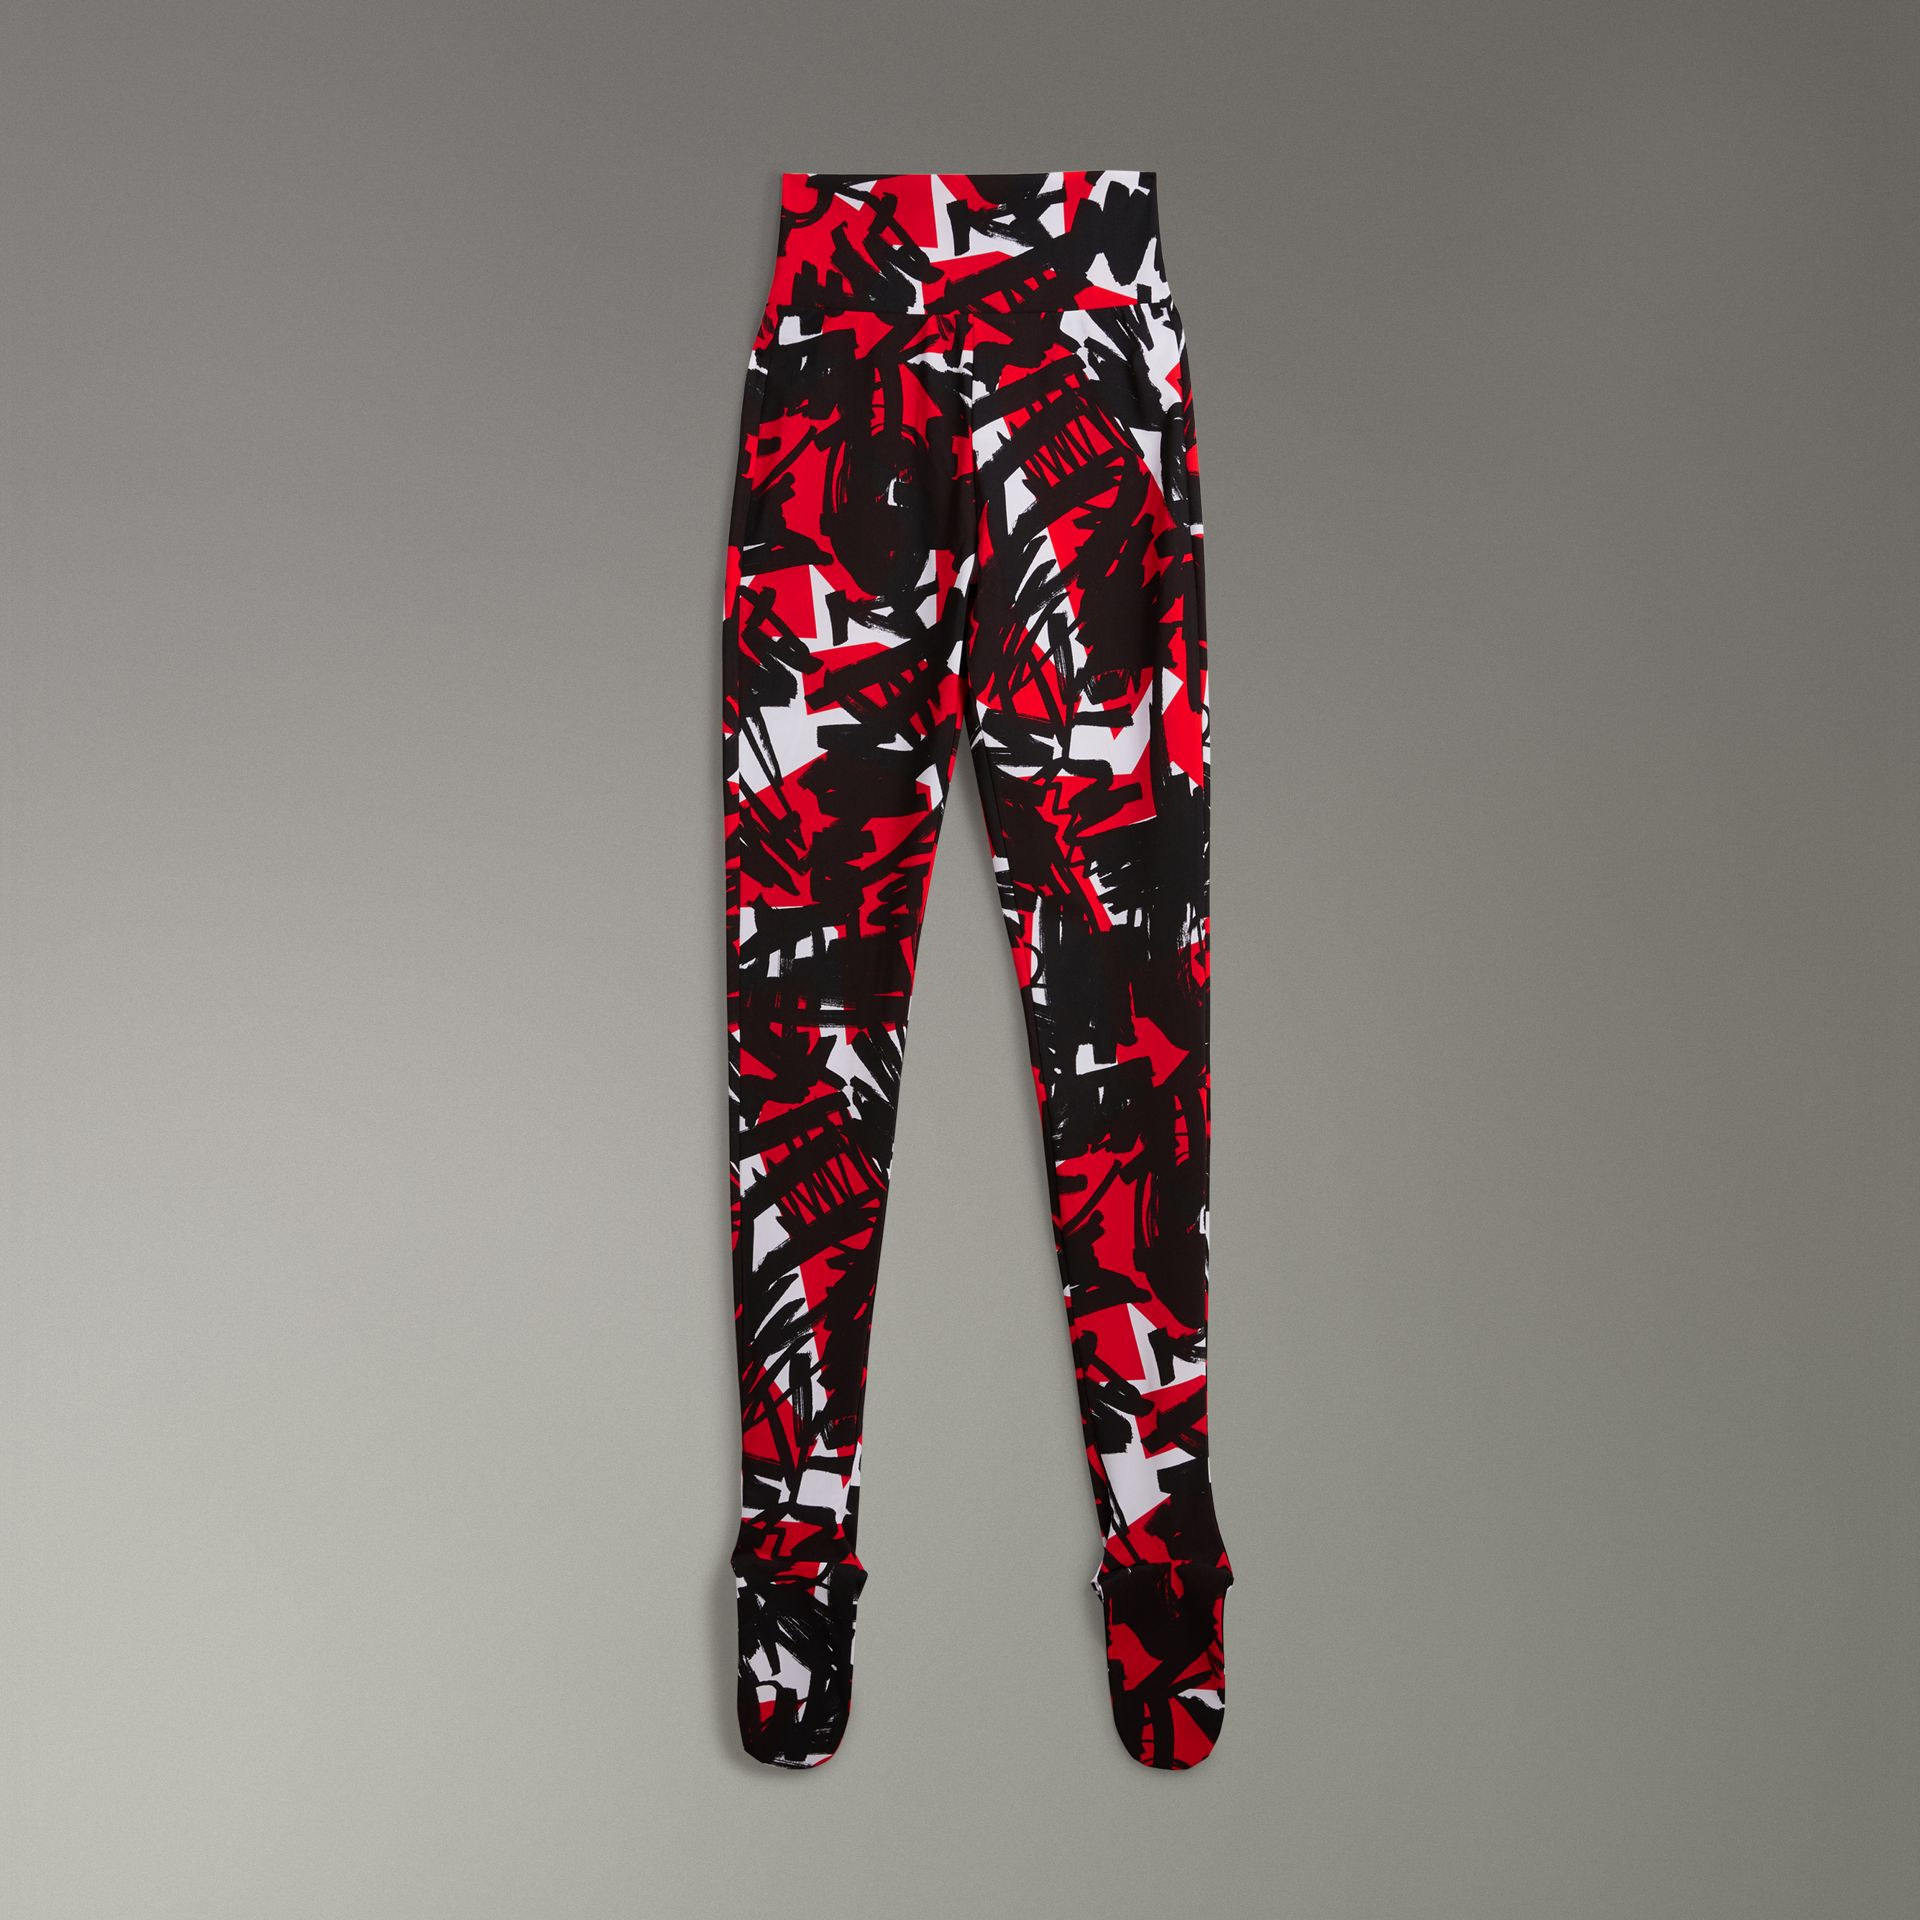 Graffiti Print Leggings in Bright Red - Women | Burberry - gallery image 3